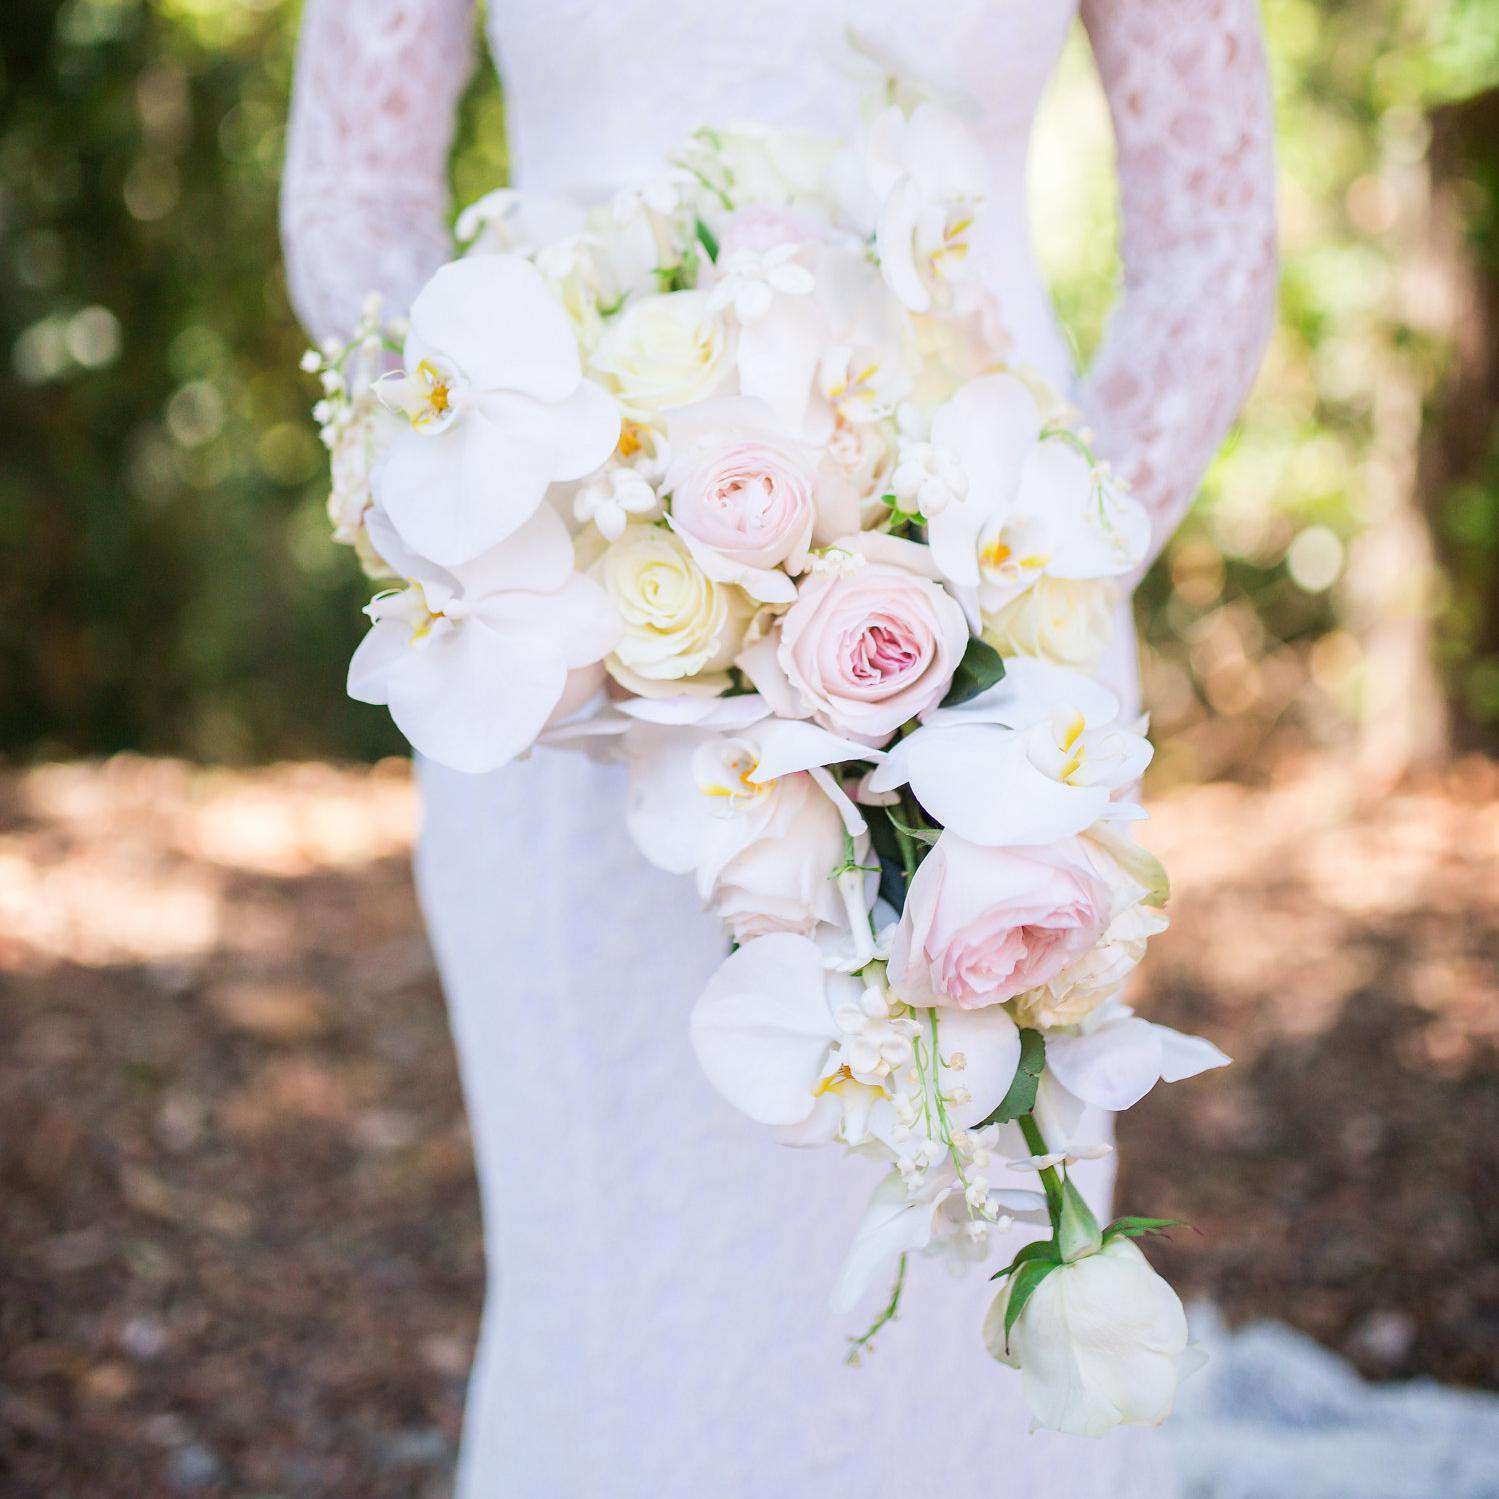 Flowers For A Wedding Bouquet: Your Most Pressing Wedding Flower Questions—Answered